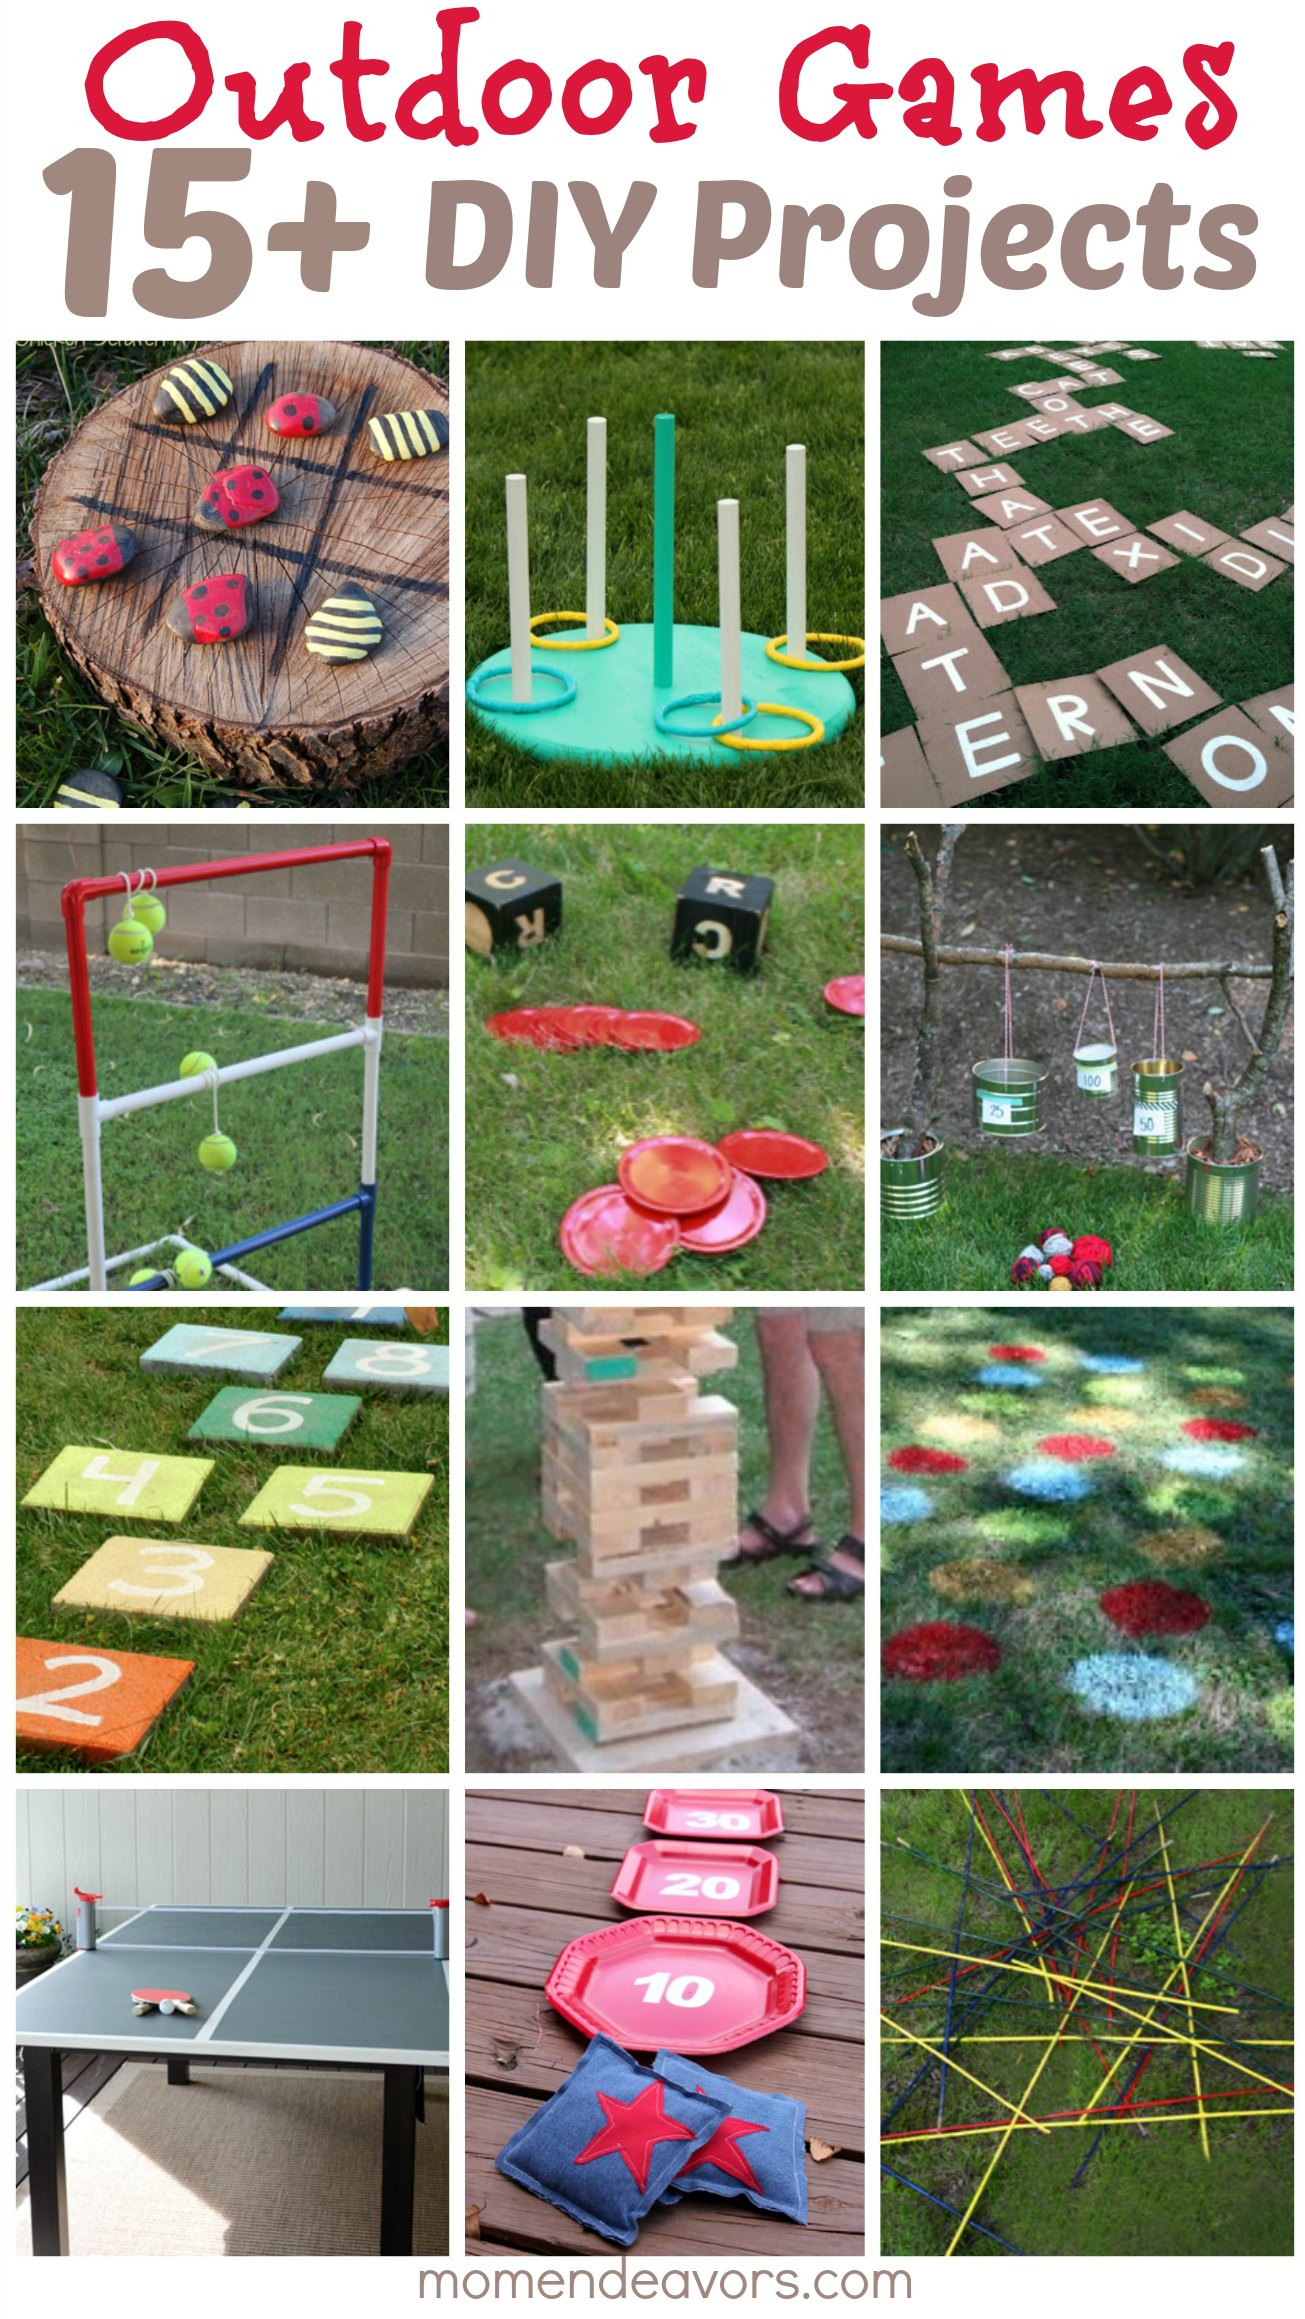 Best ideas about DIY Outdoor Games . Save or Pin DIY Outdoor Games – 15 Awesome Project Ideas for Backyard Now.